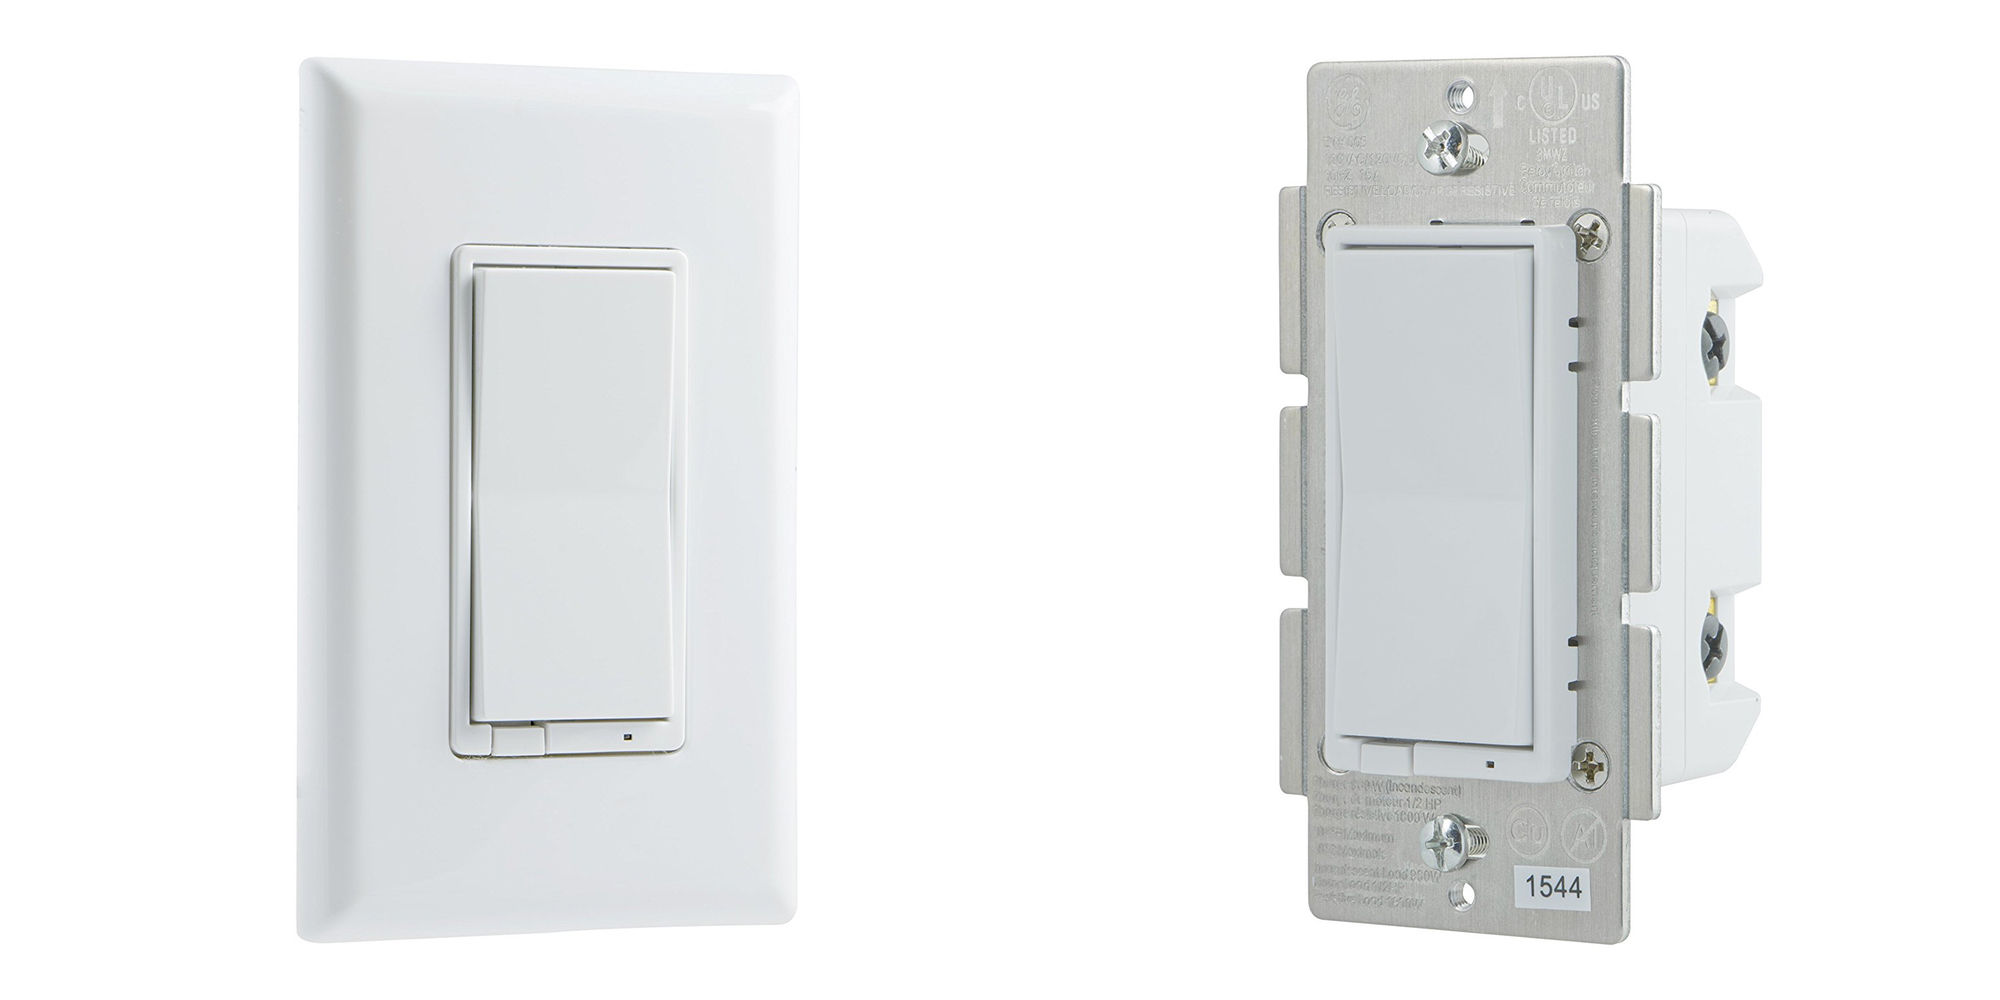 GE's Wireless Smart Switch outfits your lighting with smartphone control for $31 shipped